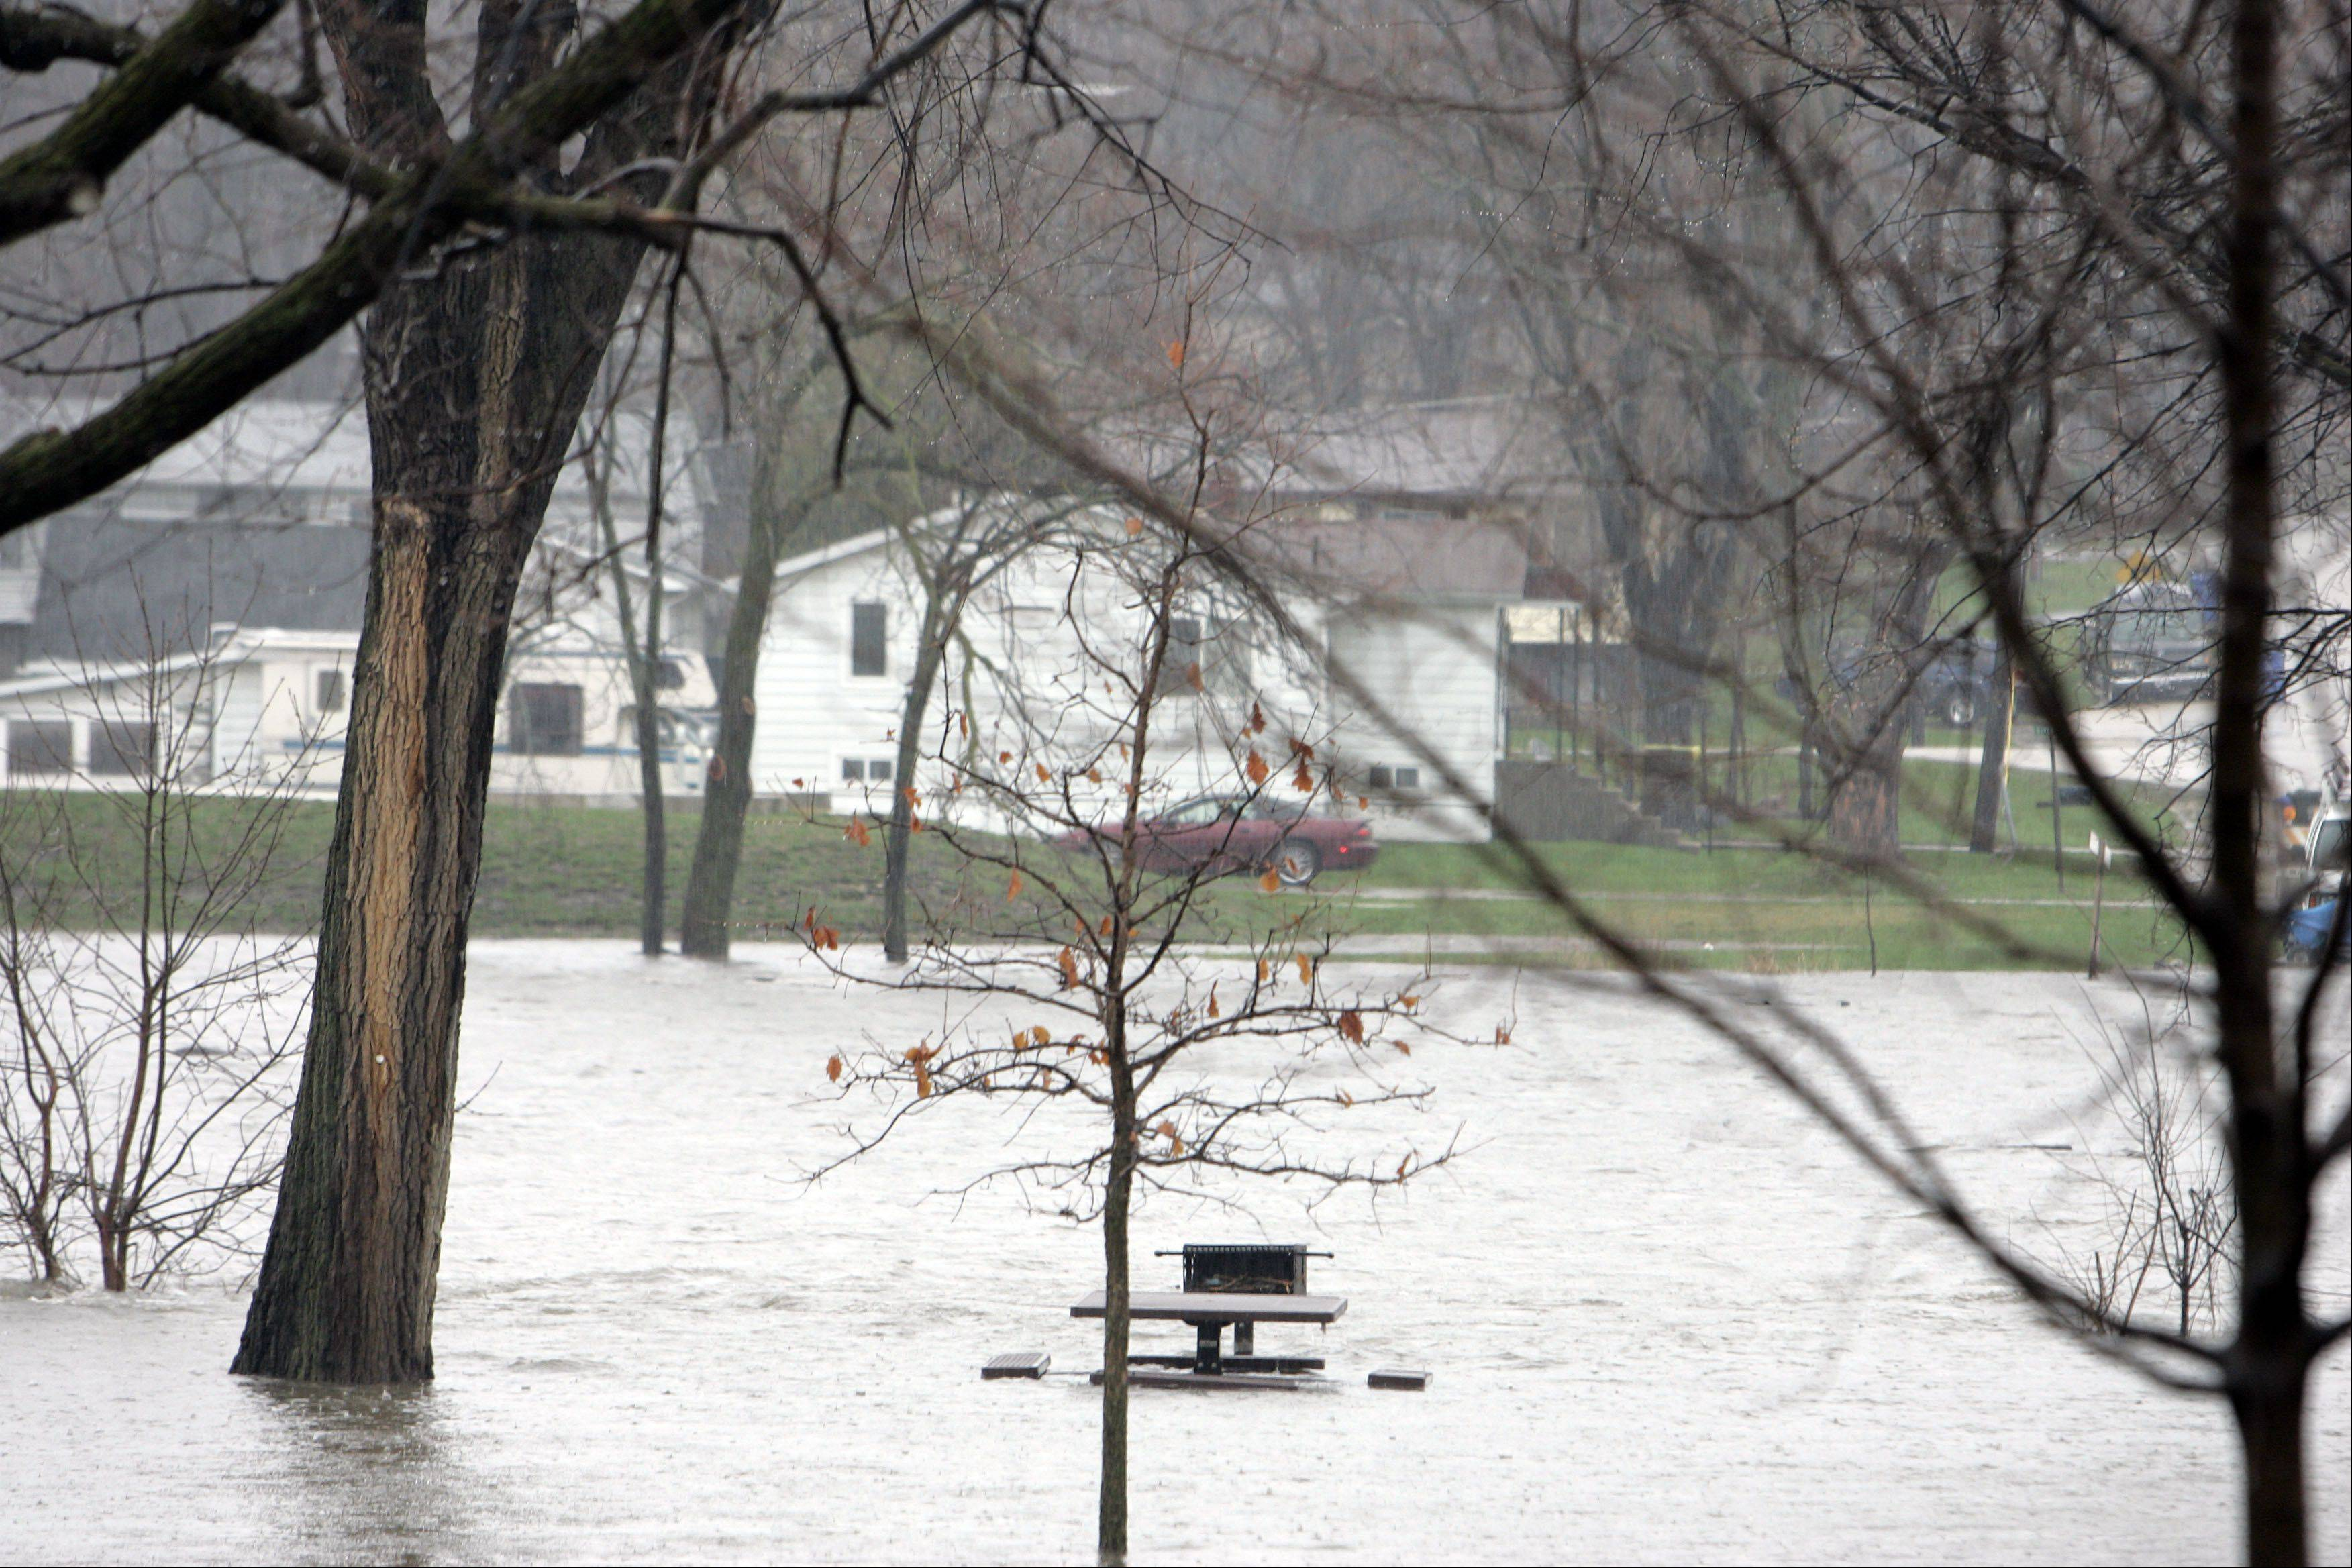 Water invades Seba Park after flooding on the Fox River Thursday in South Elgin.